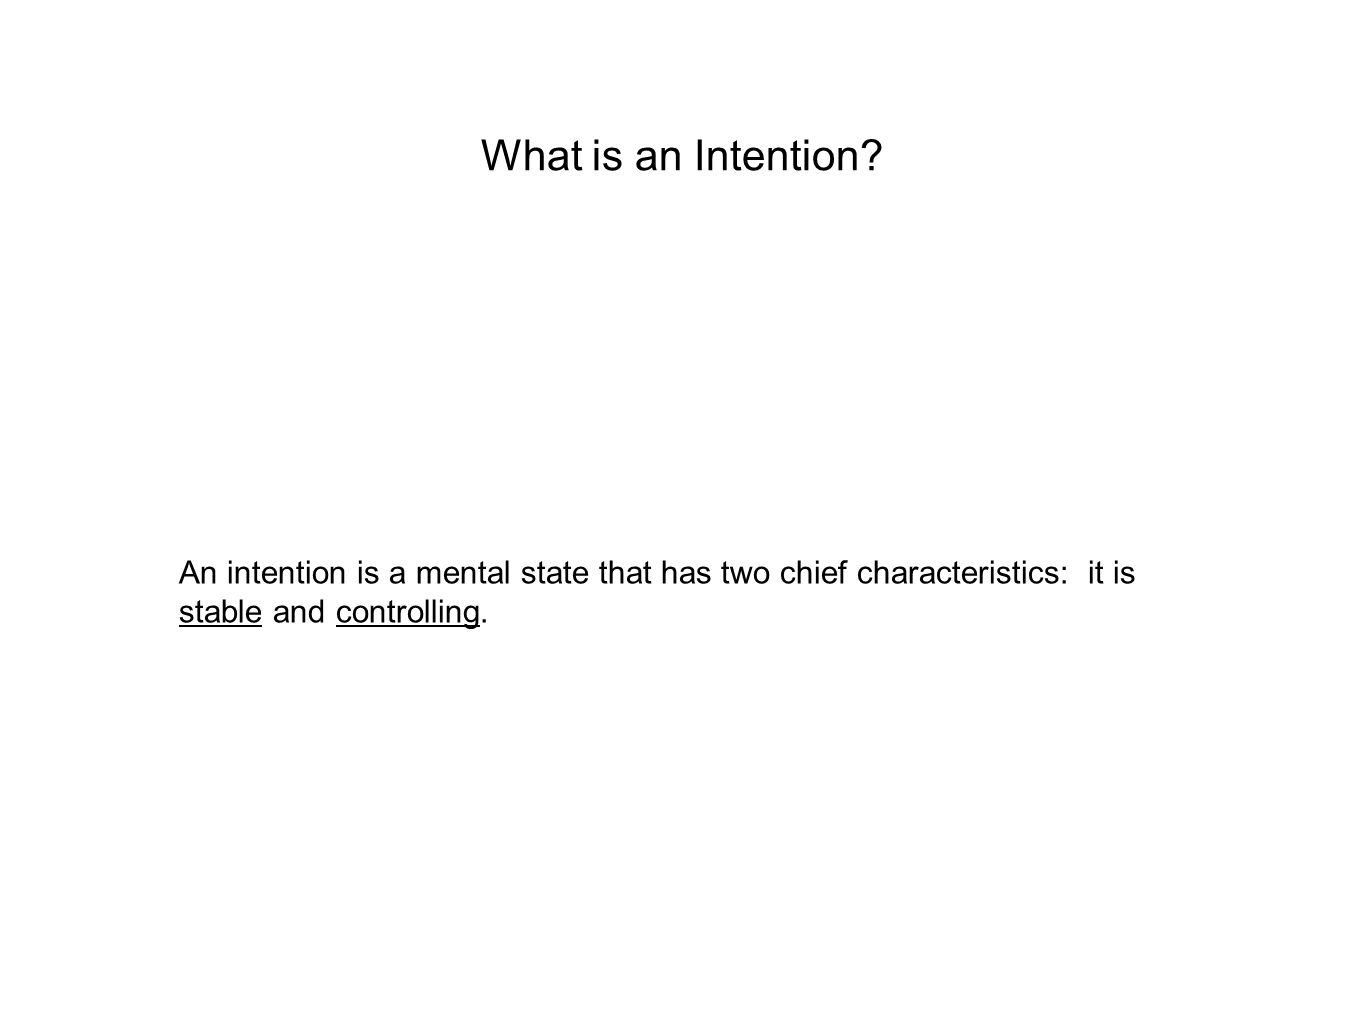 What is an Intention? An intention is a mental state that has two chief characteristics: it is stable and controlling.